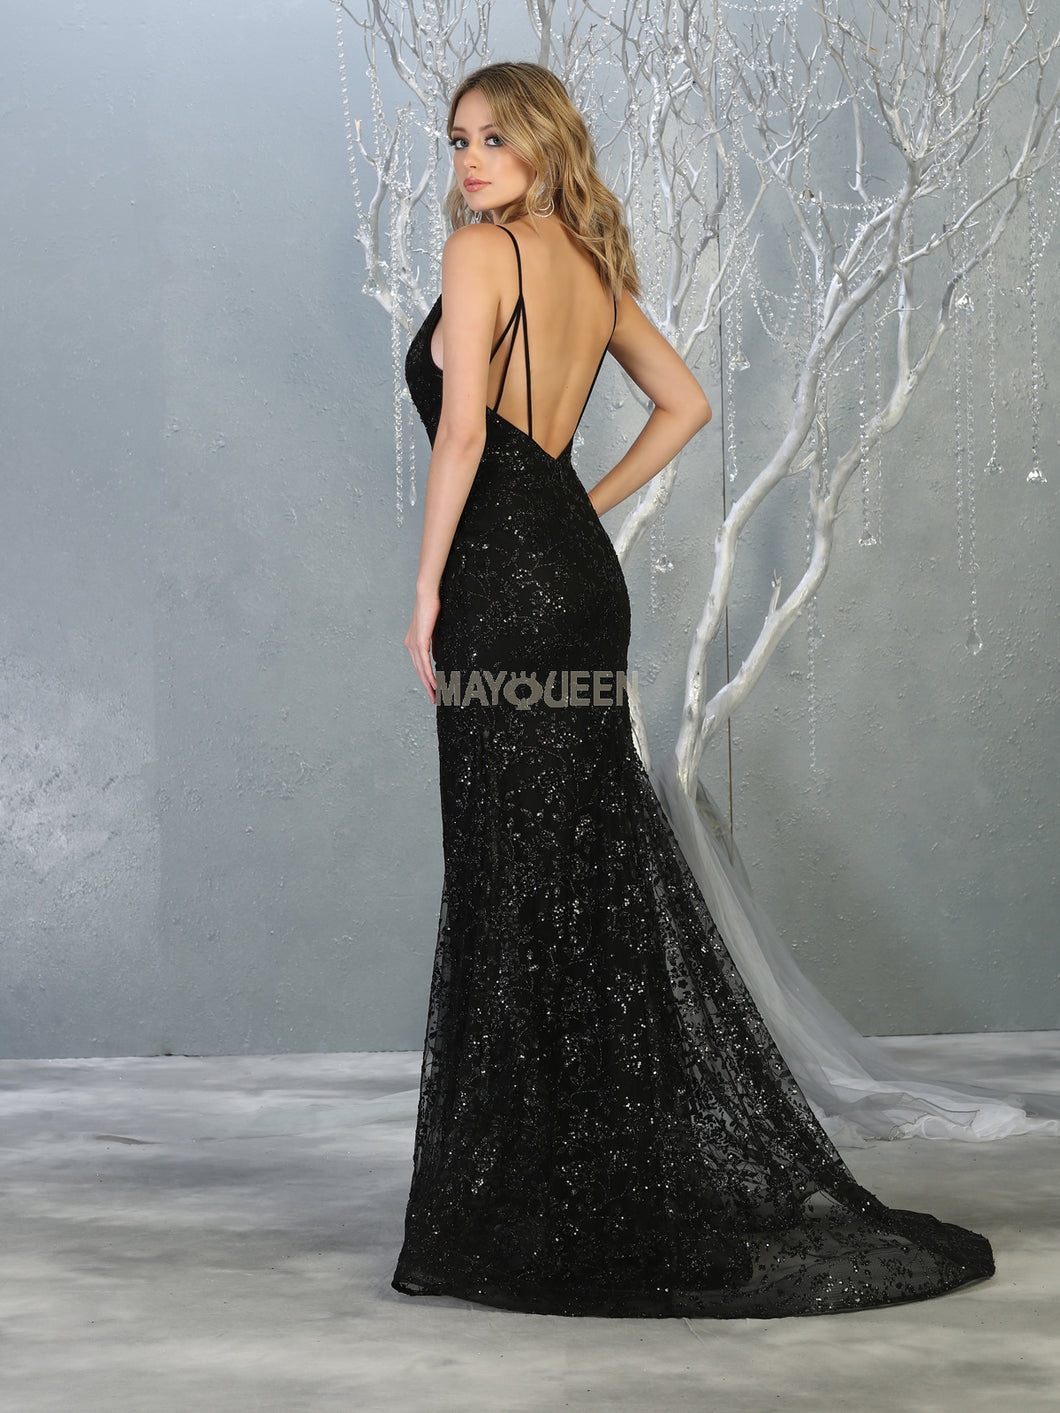 Mayqueen Size Chart E MQ 1752 - A-Line Fit and Flare Glitter Gown with Deep V Neck and Strappy Back - Diggz Prom